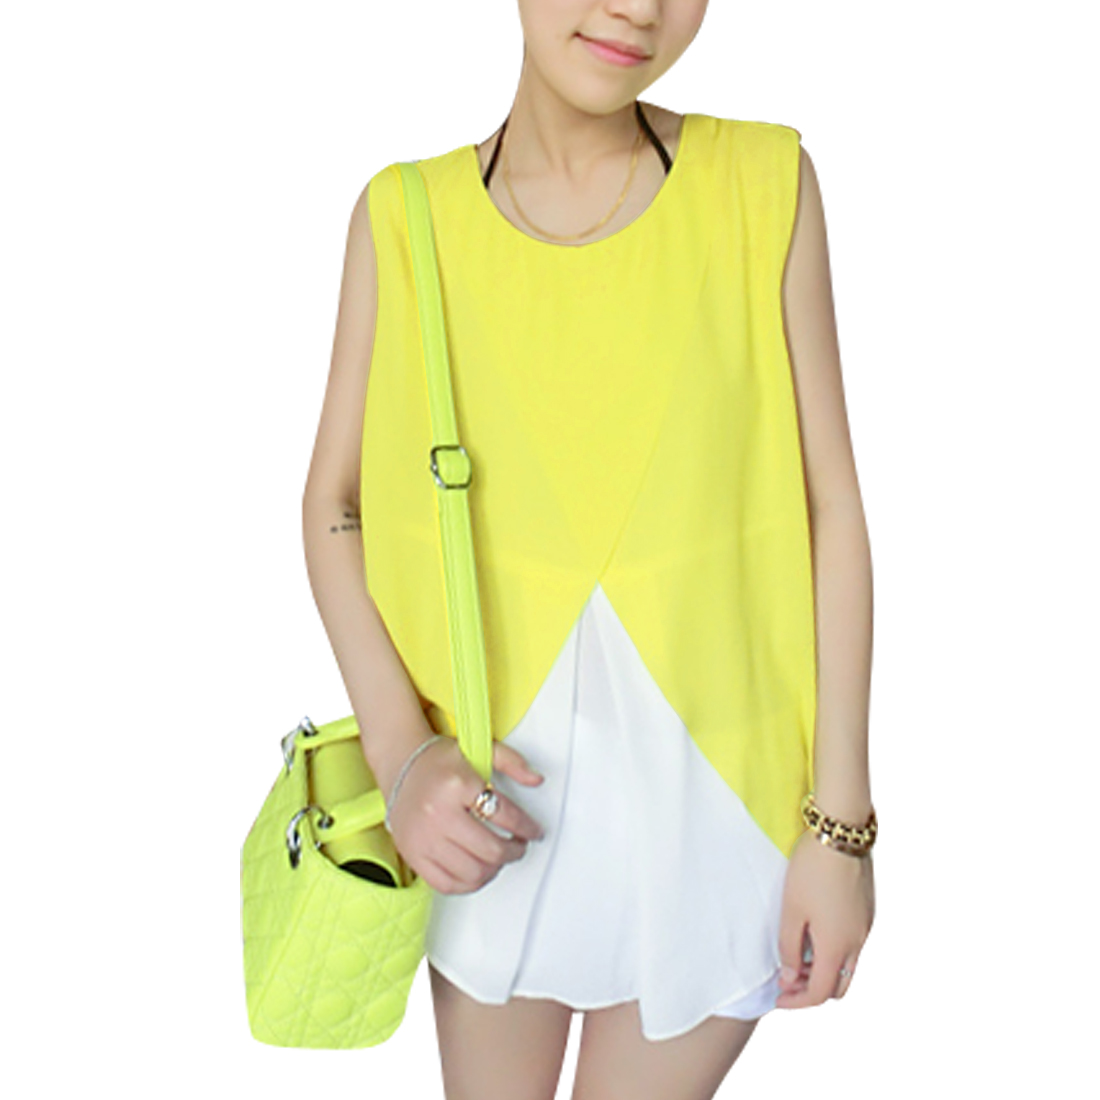 Laides Round Neck Pullover Panel Top Shirt Yellow White S